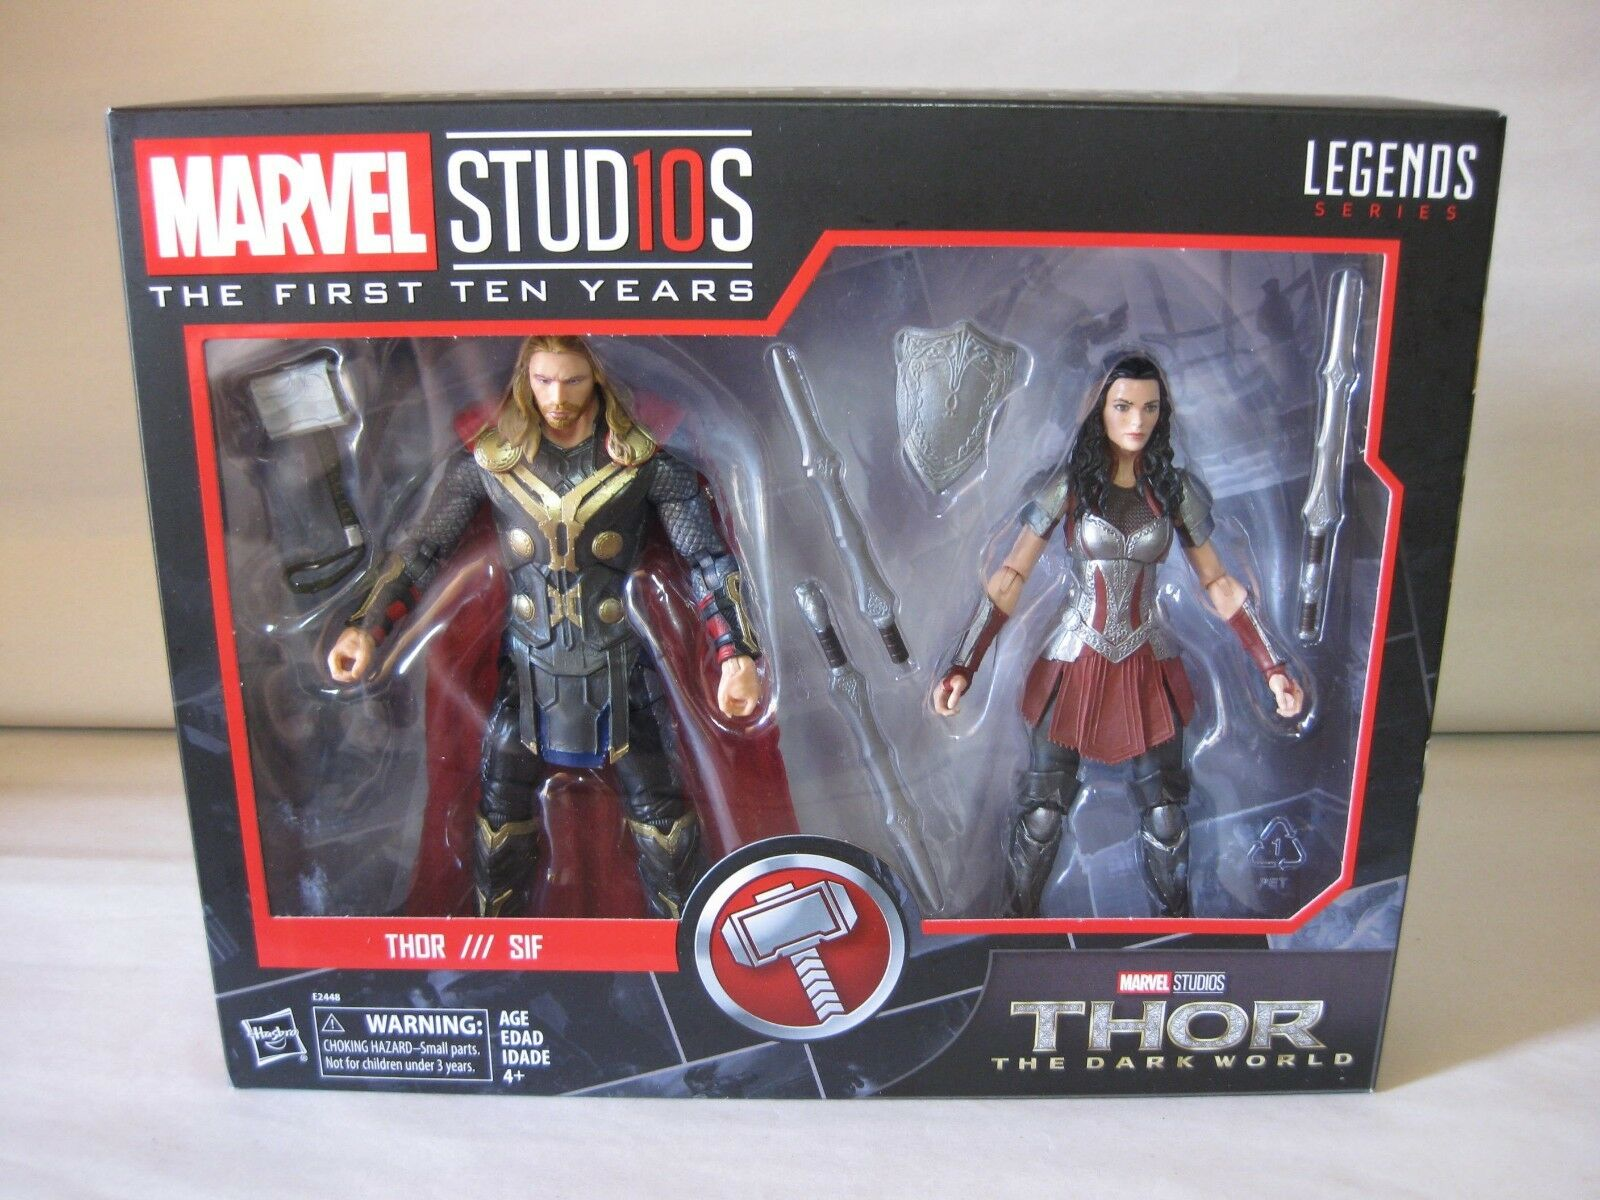 2017 Marvel Legends Marvel Studios 1st 10 Years Dark World Thor Sif 2 Pk New MIP